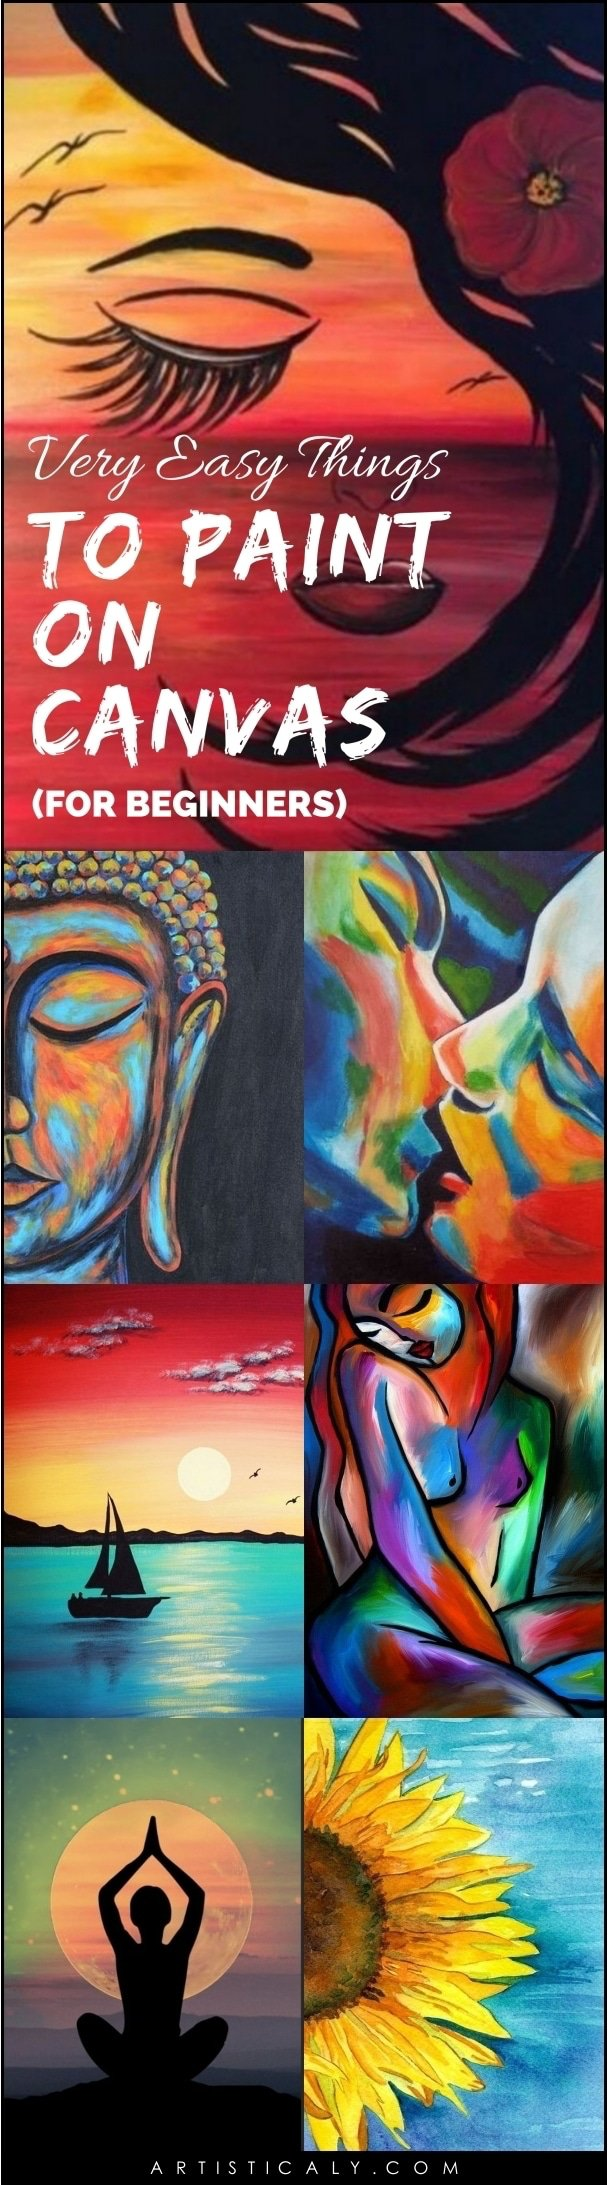 Very-Easy-Things-To-Paint-On-Canvas-For-Beginners